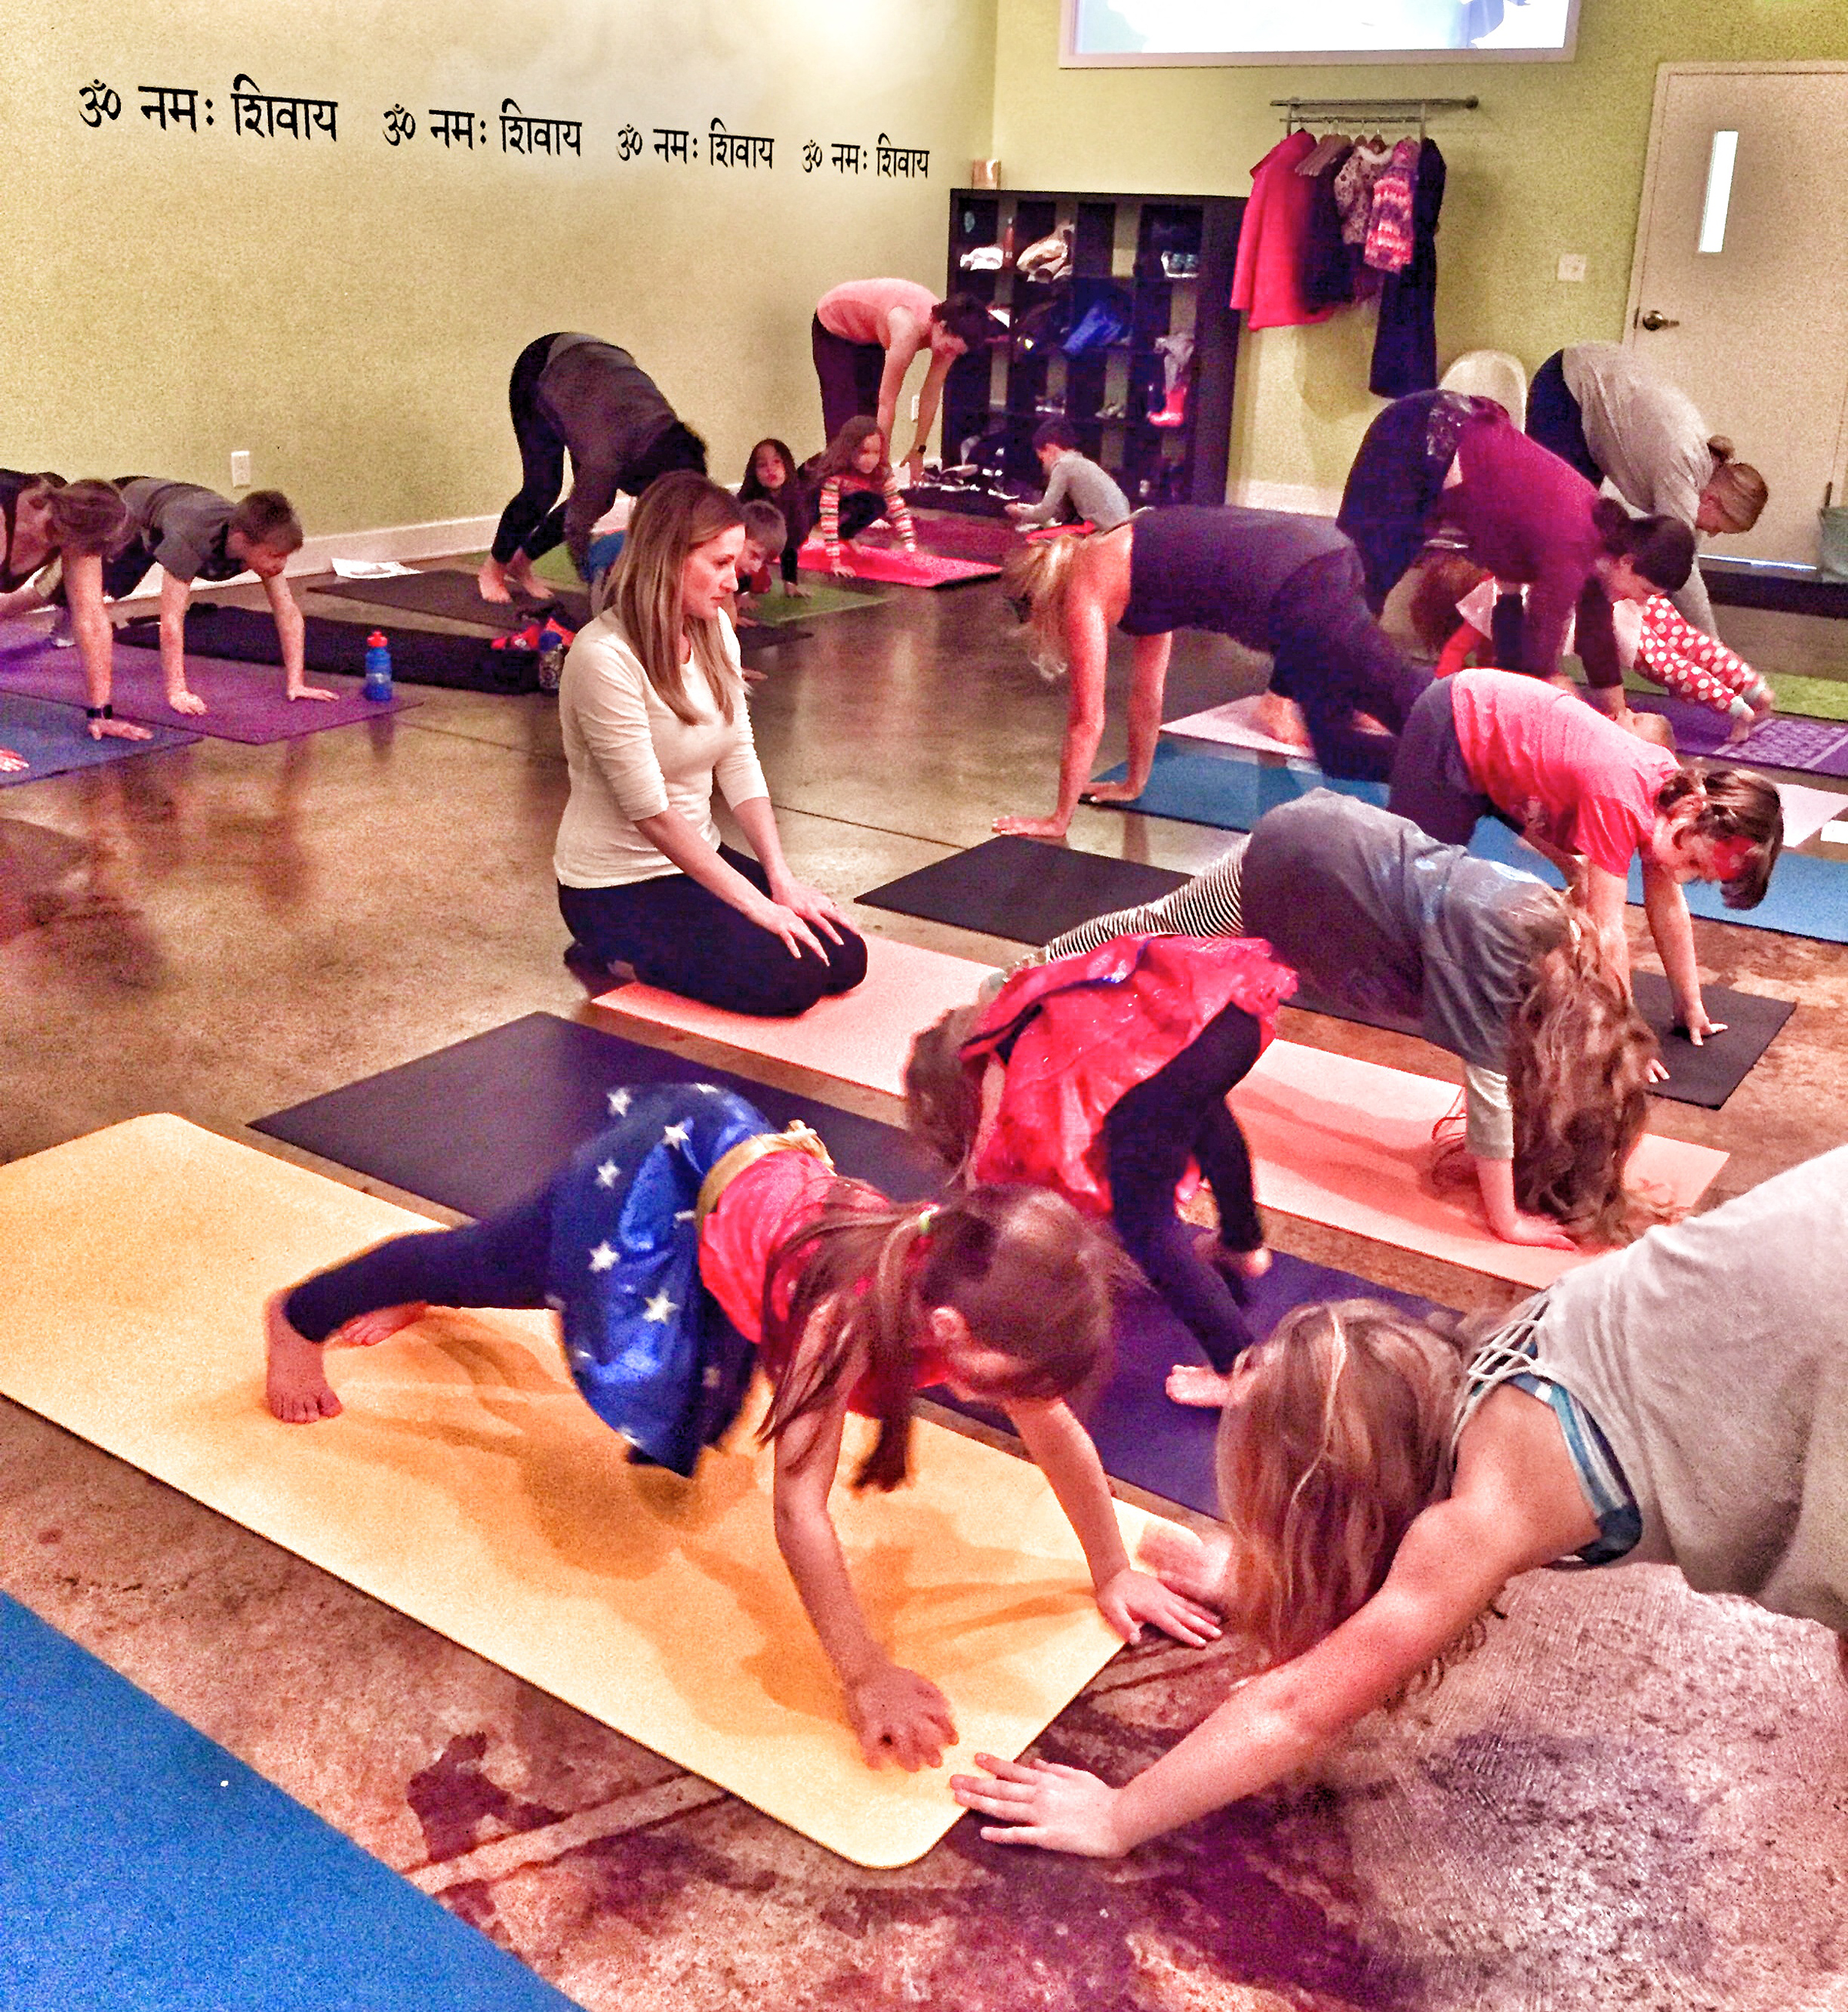 Seva Yoga previously offered a superhero themed class for kids.